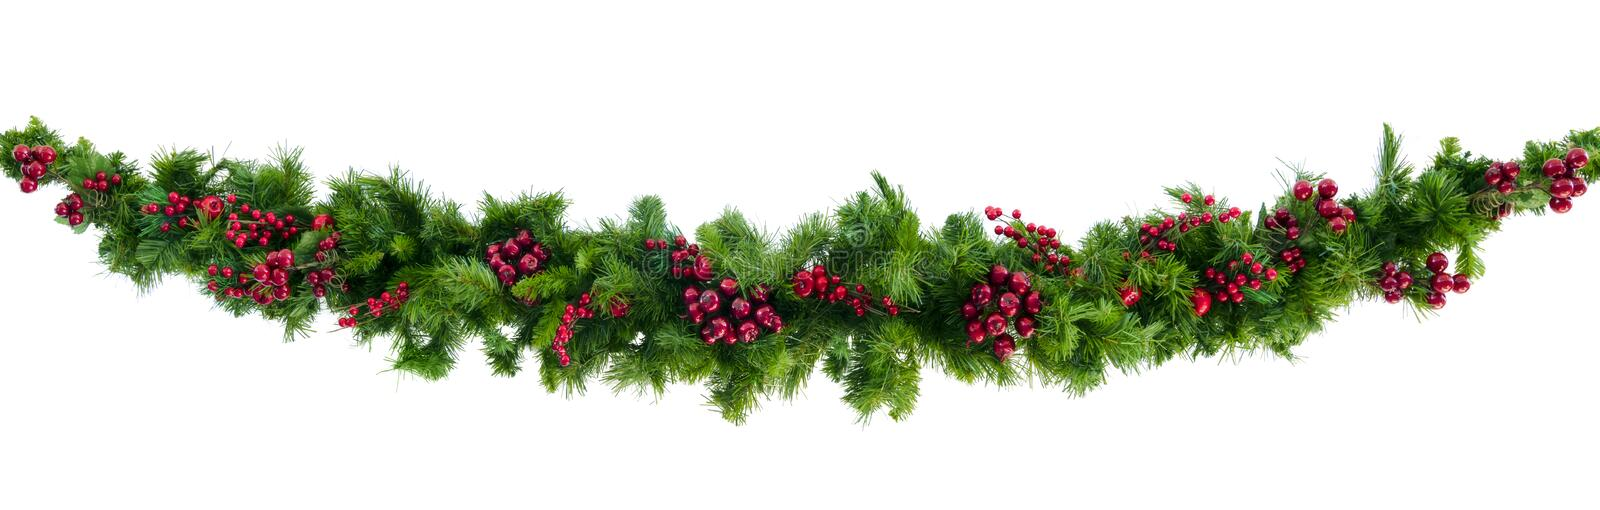 Christmas Garland with Red Berries Isolated on White stock images